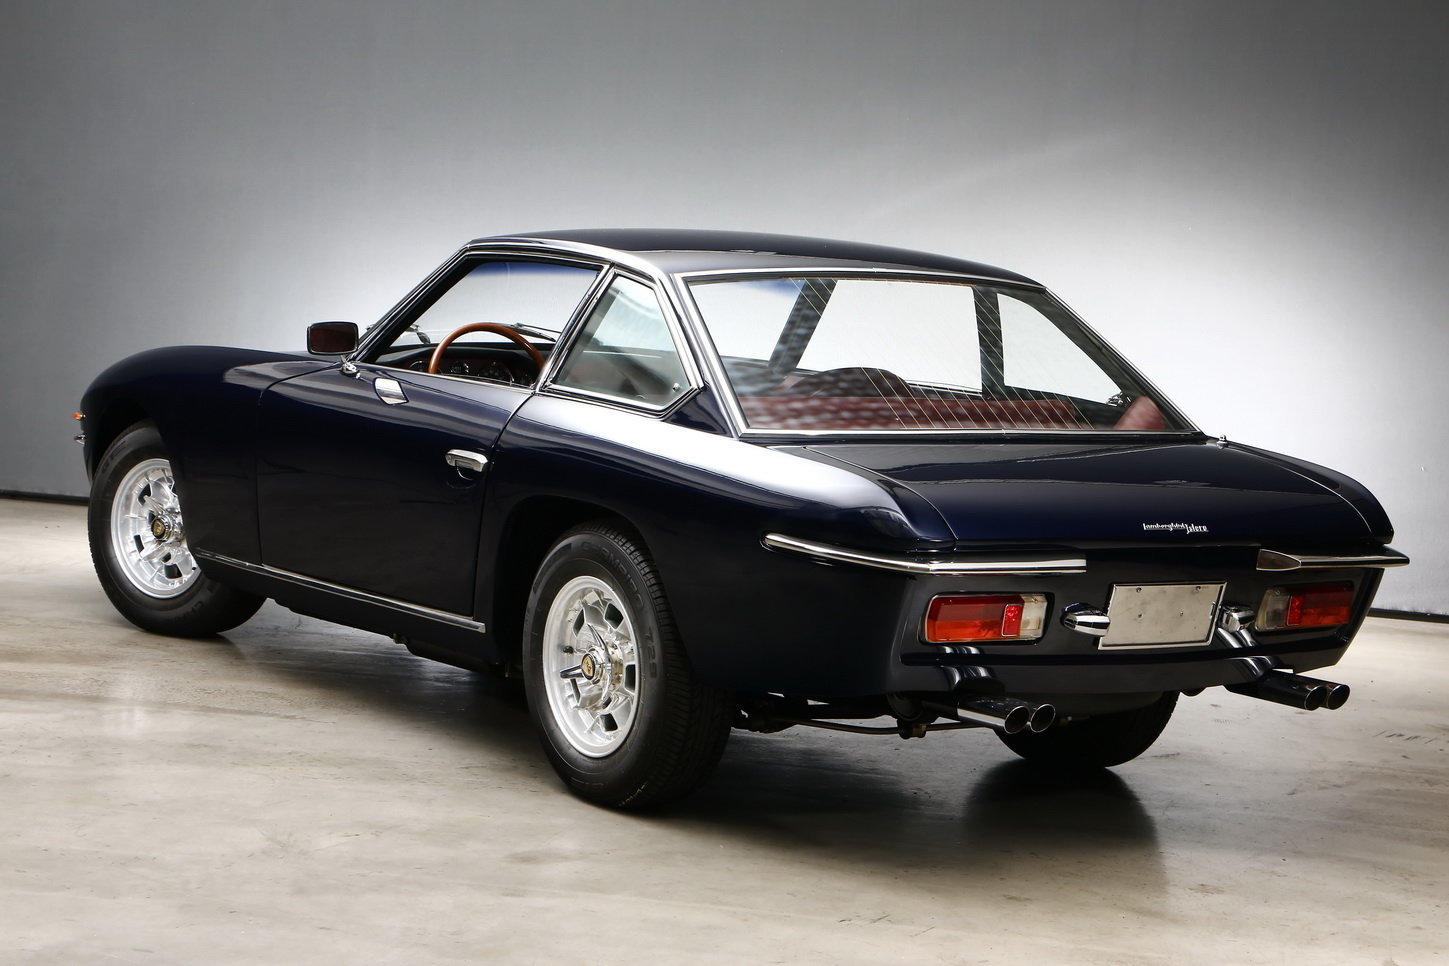 1968 Lamborghini Islero GT 2+2 series 1 For Sale (picture 3 of 6)